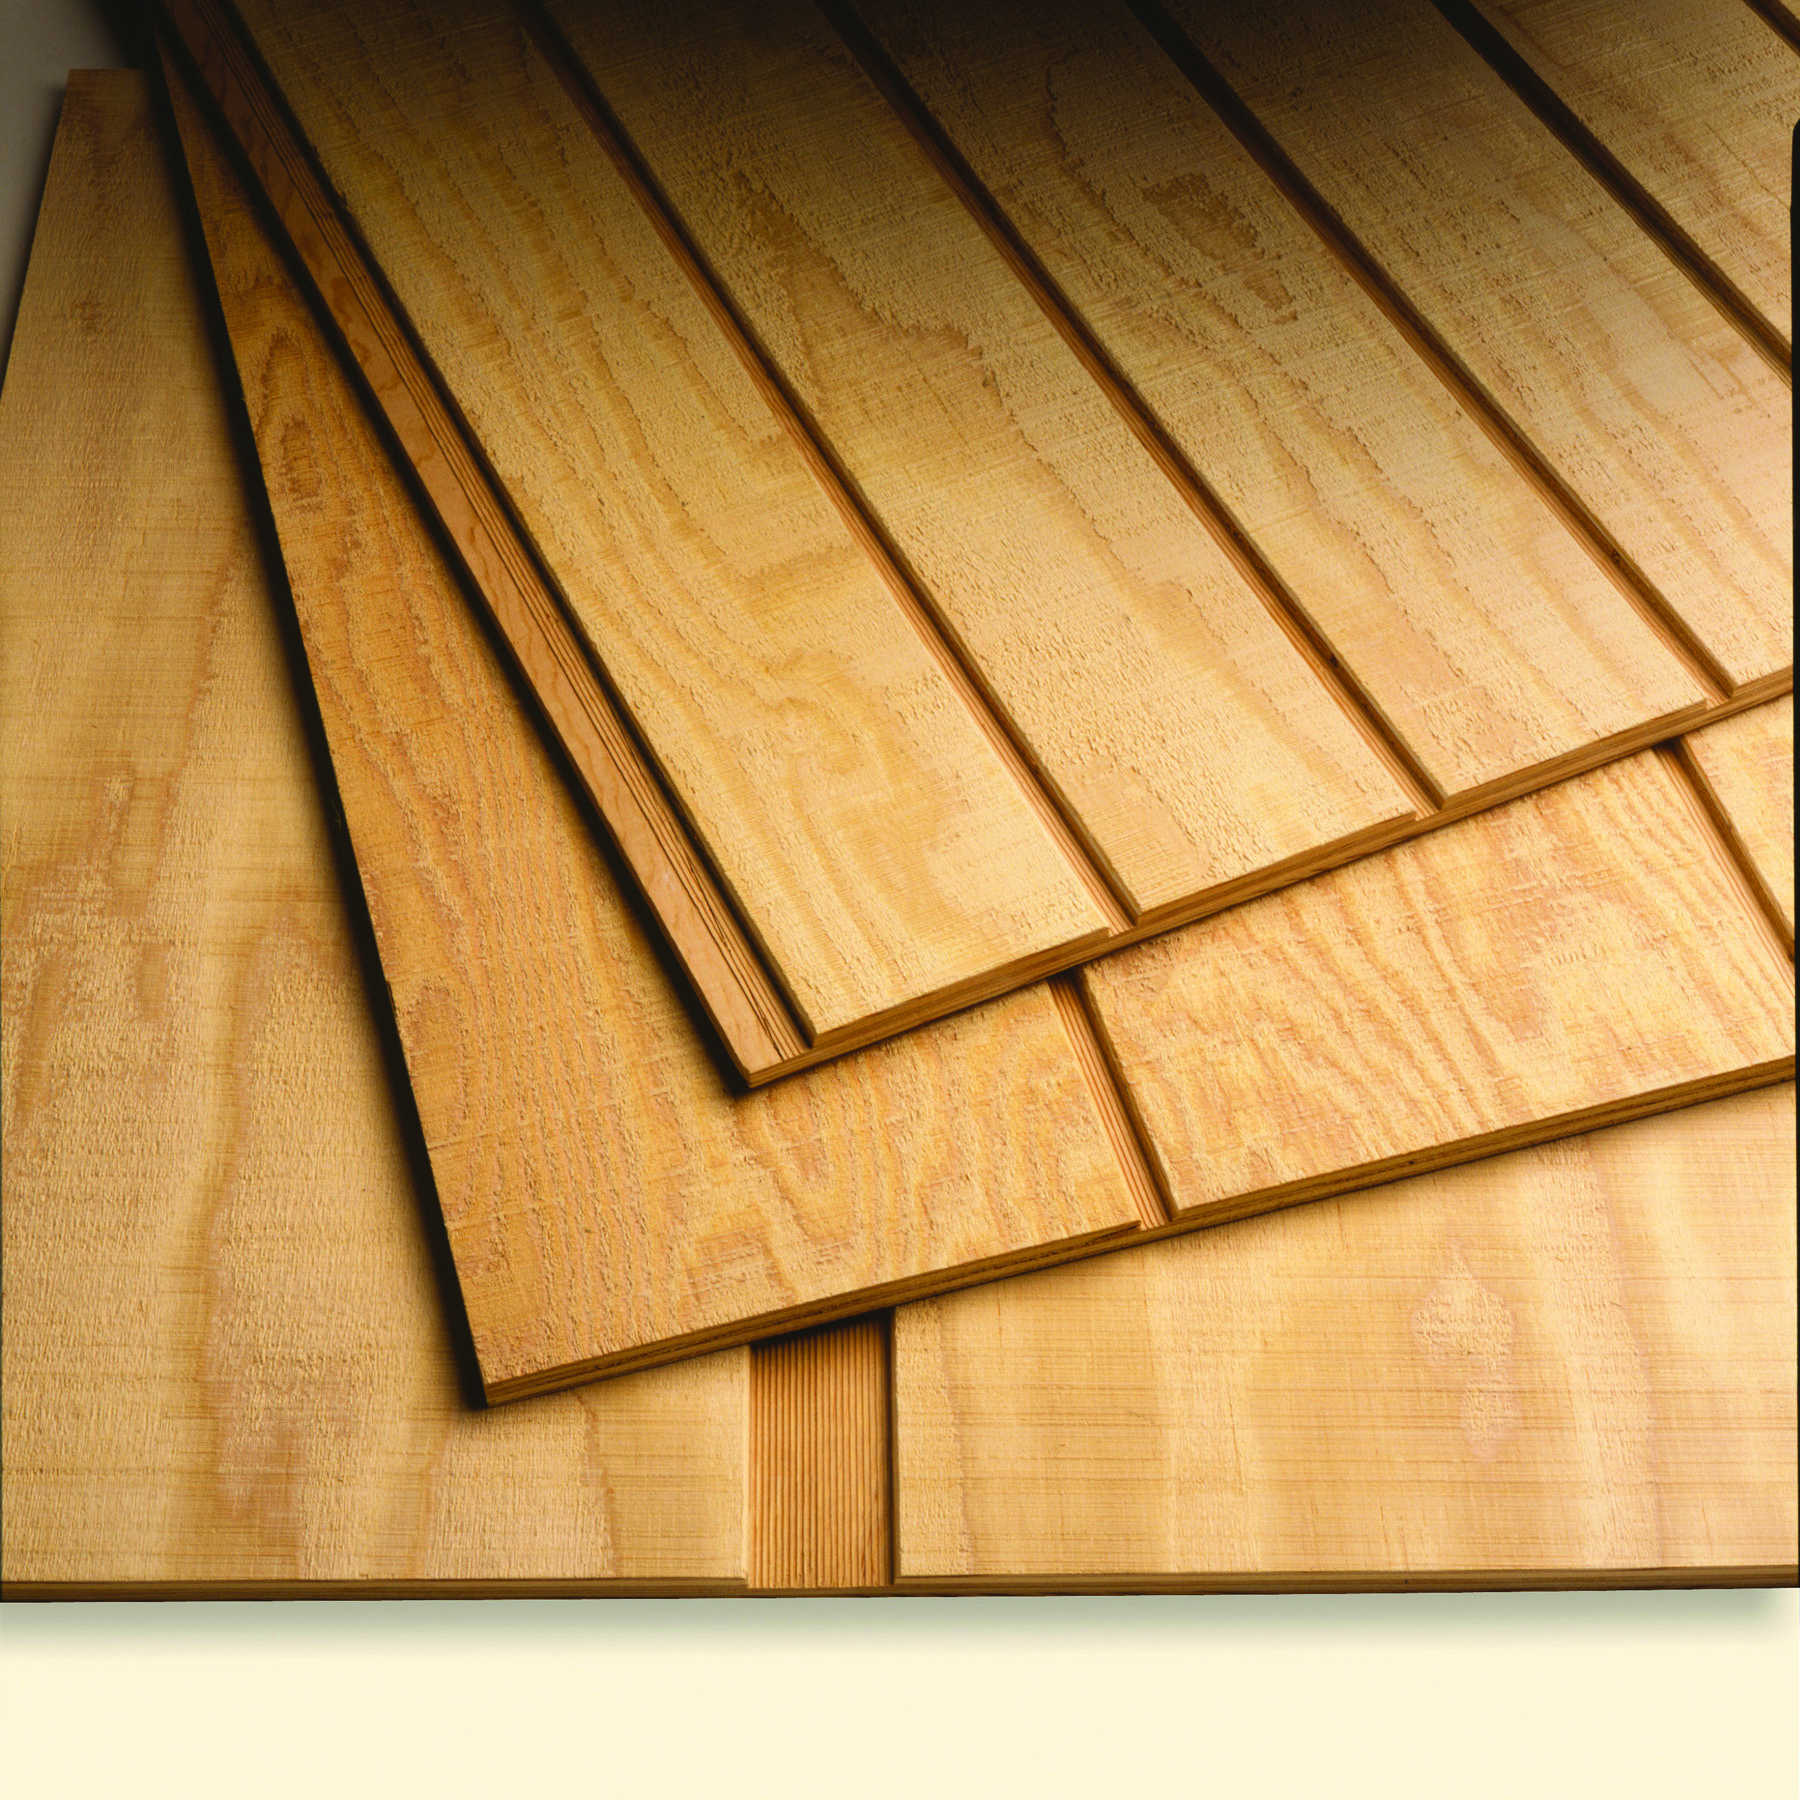 Douglas Fir Plywood Siding | Weekes Forest Products